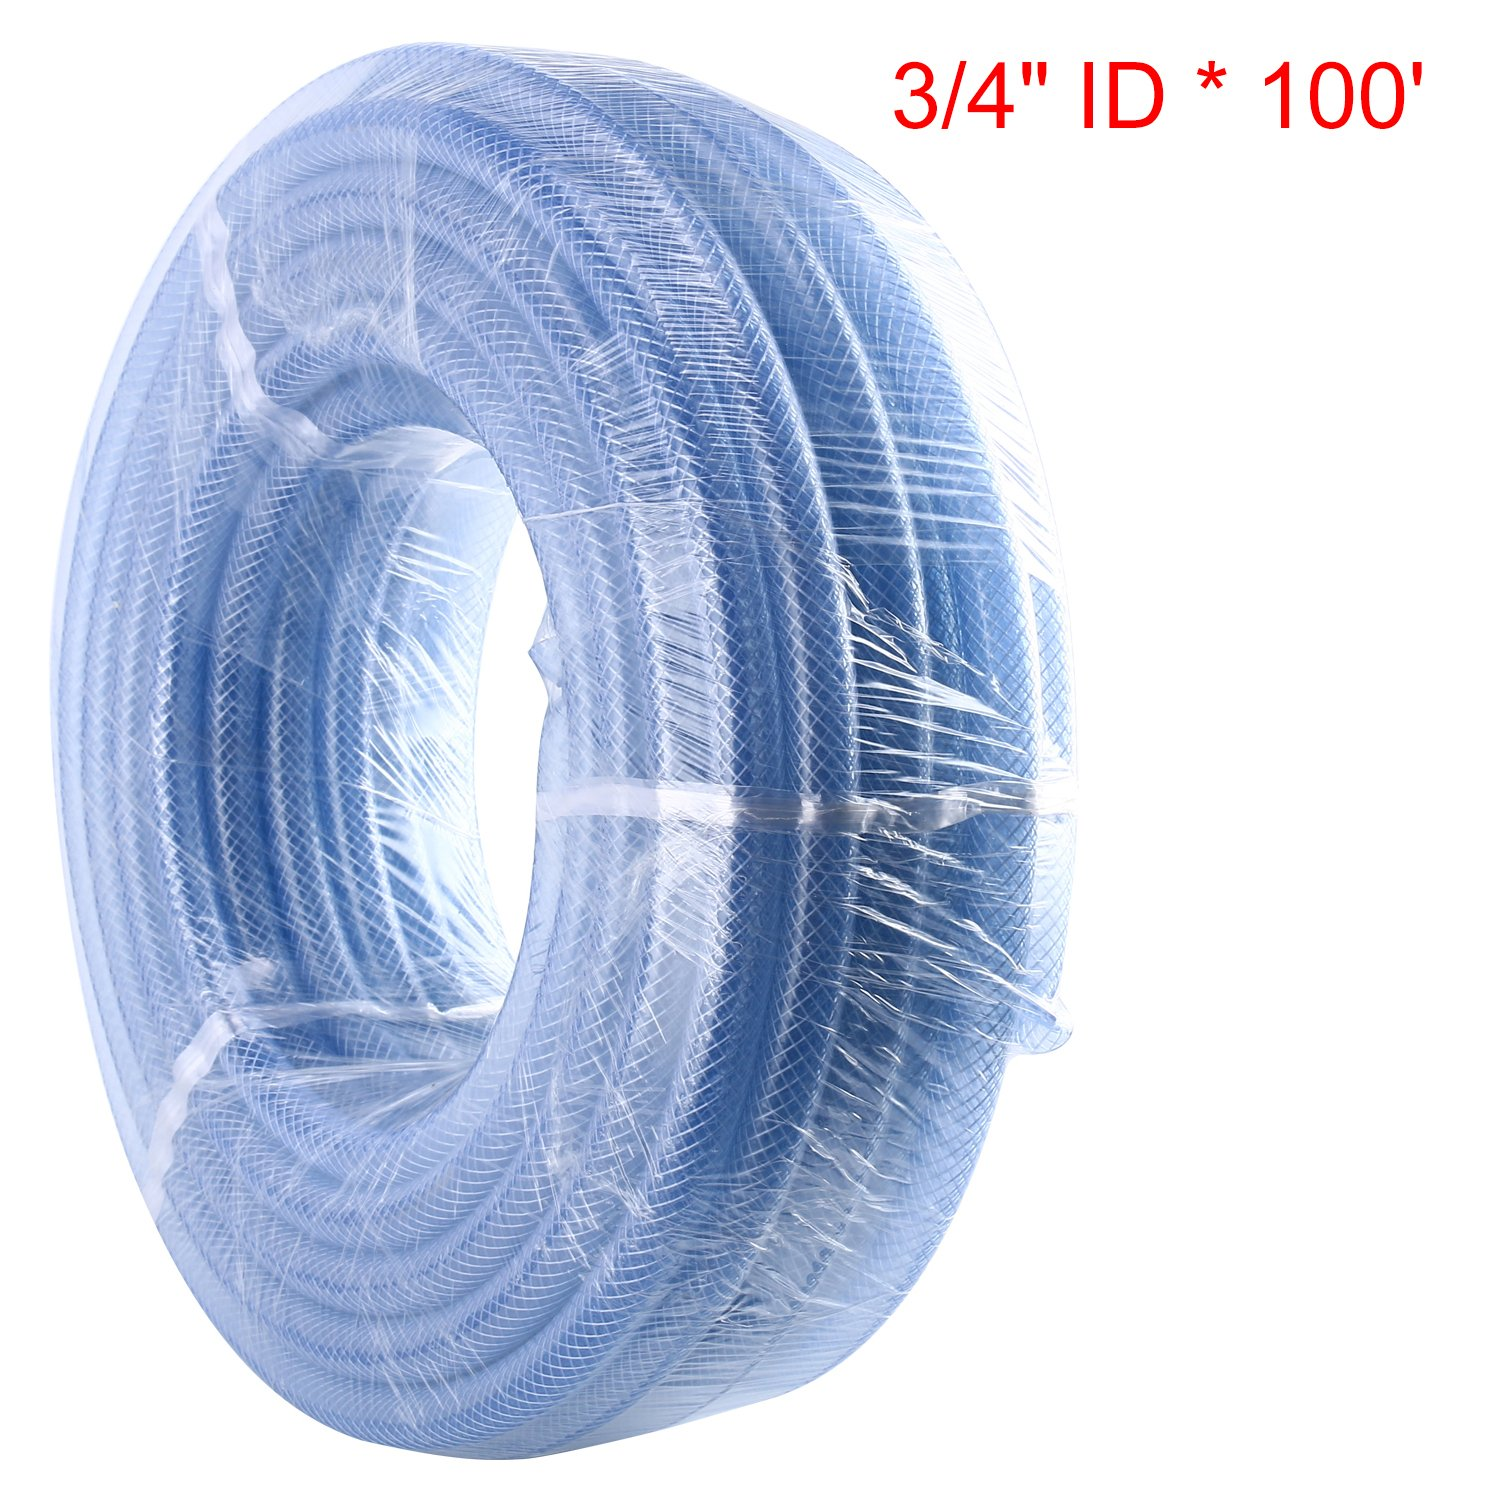 Homend 3/4'' ID X 100FT High Pressure Braided Clear Flexible Industrial PVC Tubing Heavy Duty UV Chemical Resistant Vinyl Hose Water (3/4'' ID X 100FT)